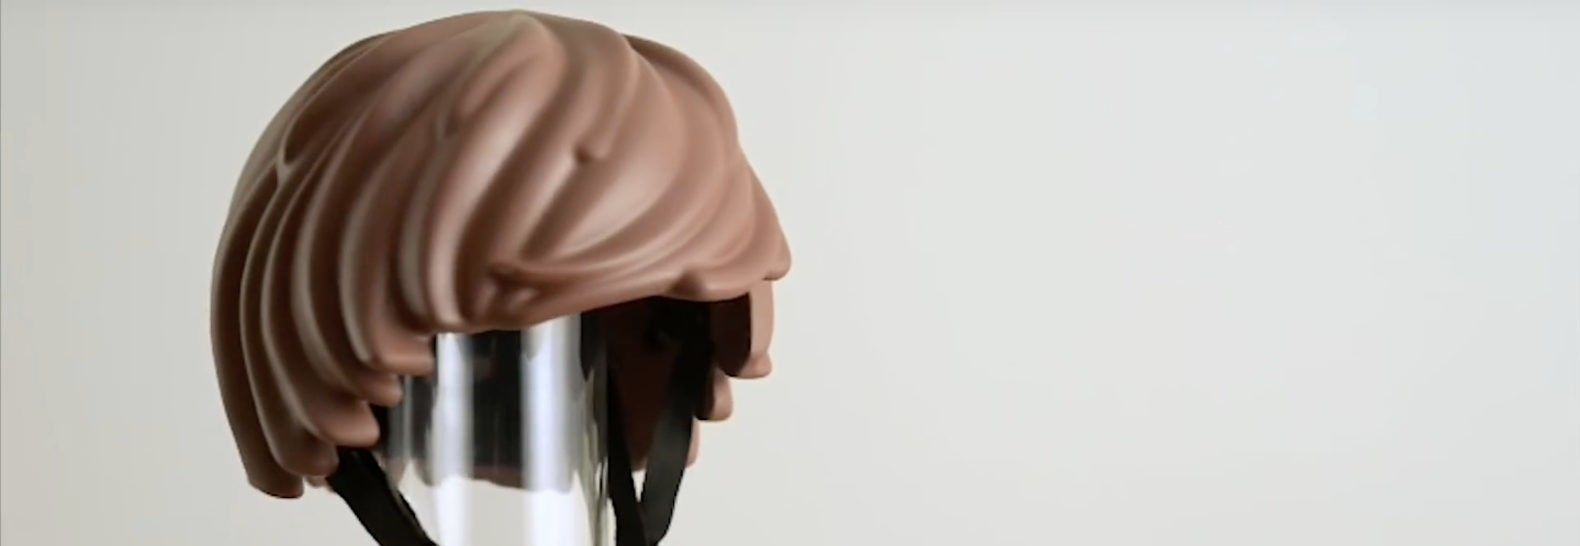 This Playmobil hair helmet was designed to make it easier and fun for kids to be safe while riding their bicycles.